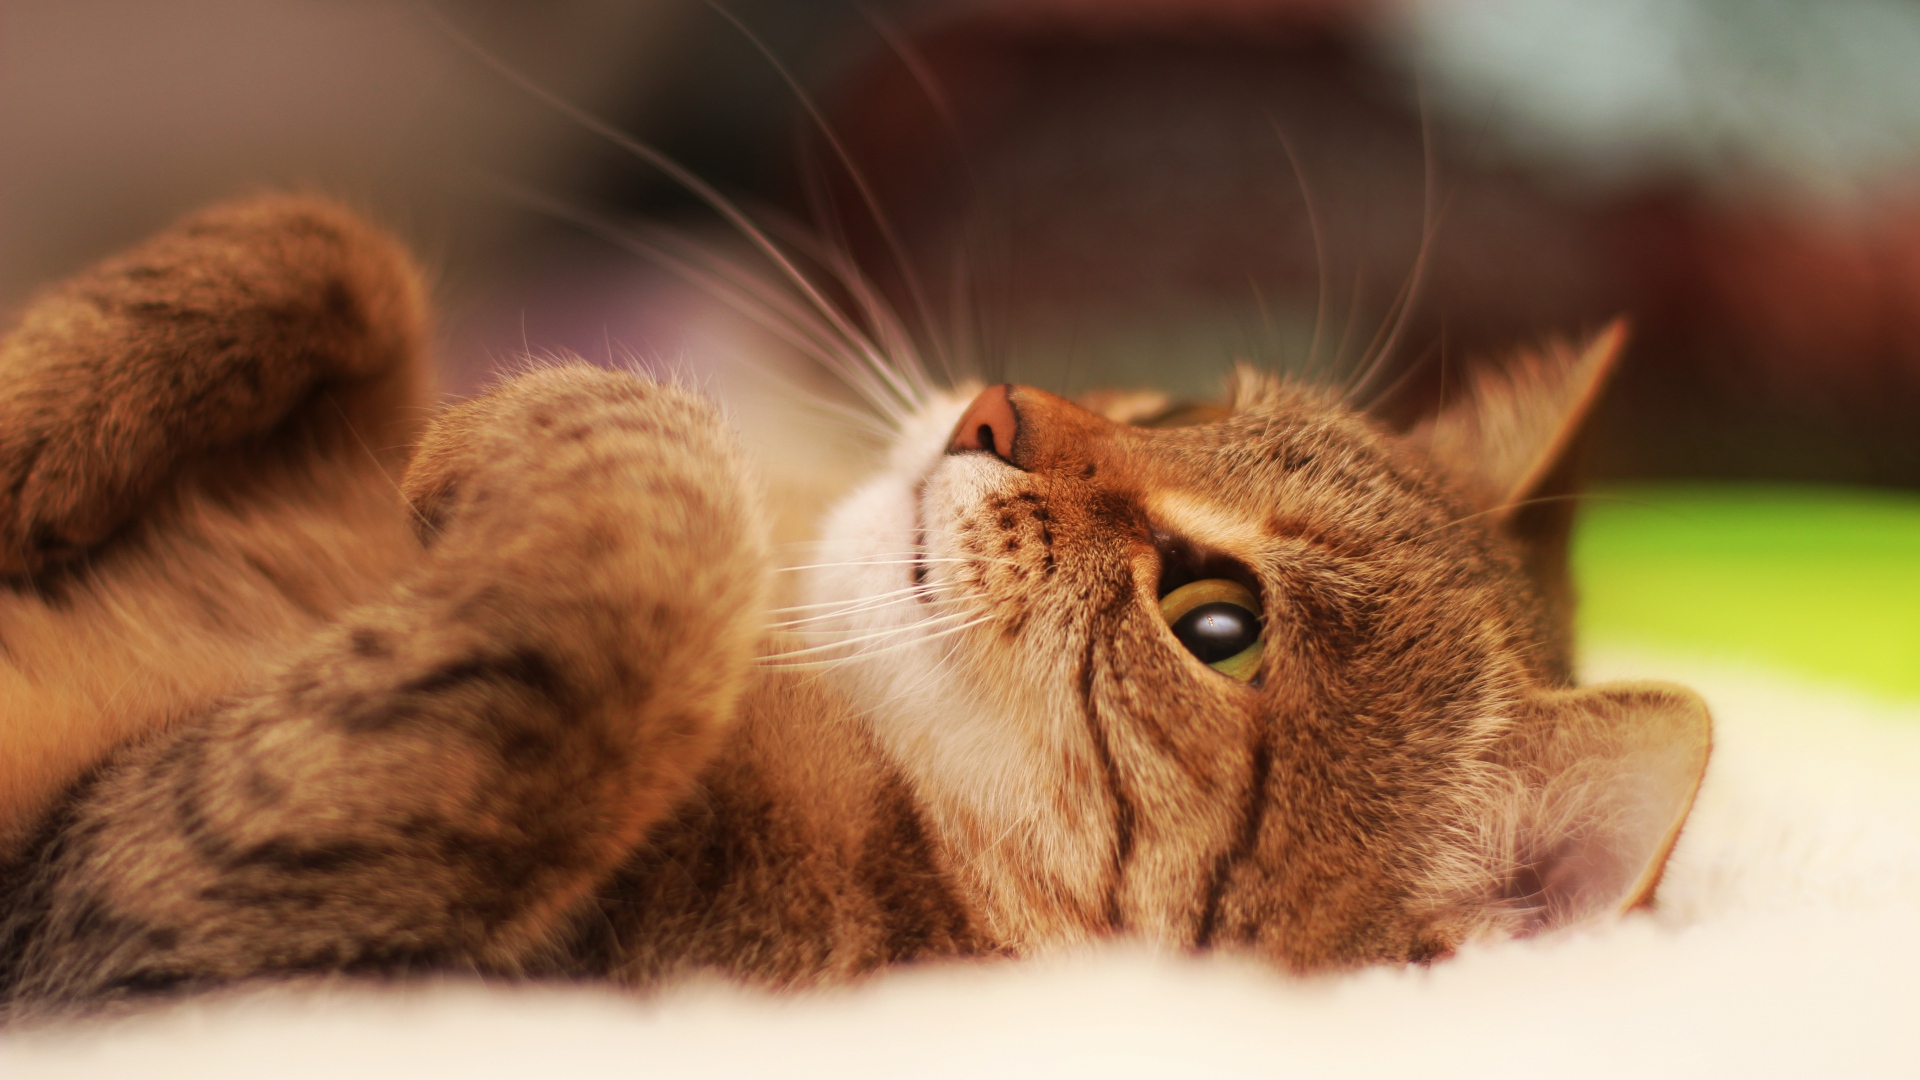 Cute Cat Wallpapers Hd Resolution Iphone For Android Tumpah 1920x1080